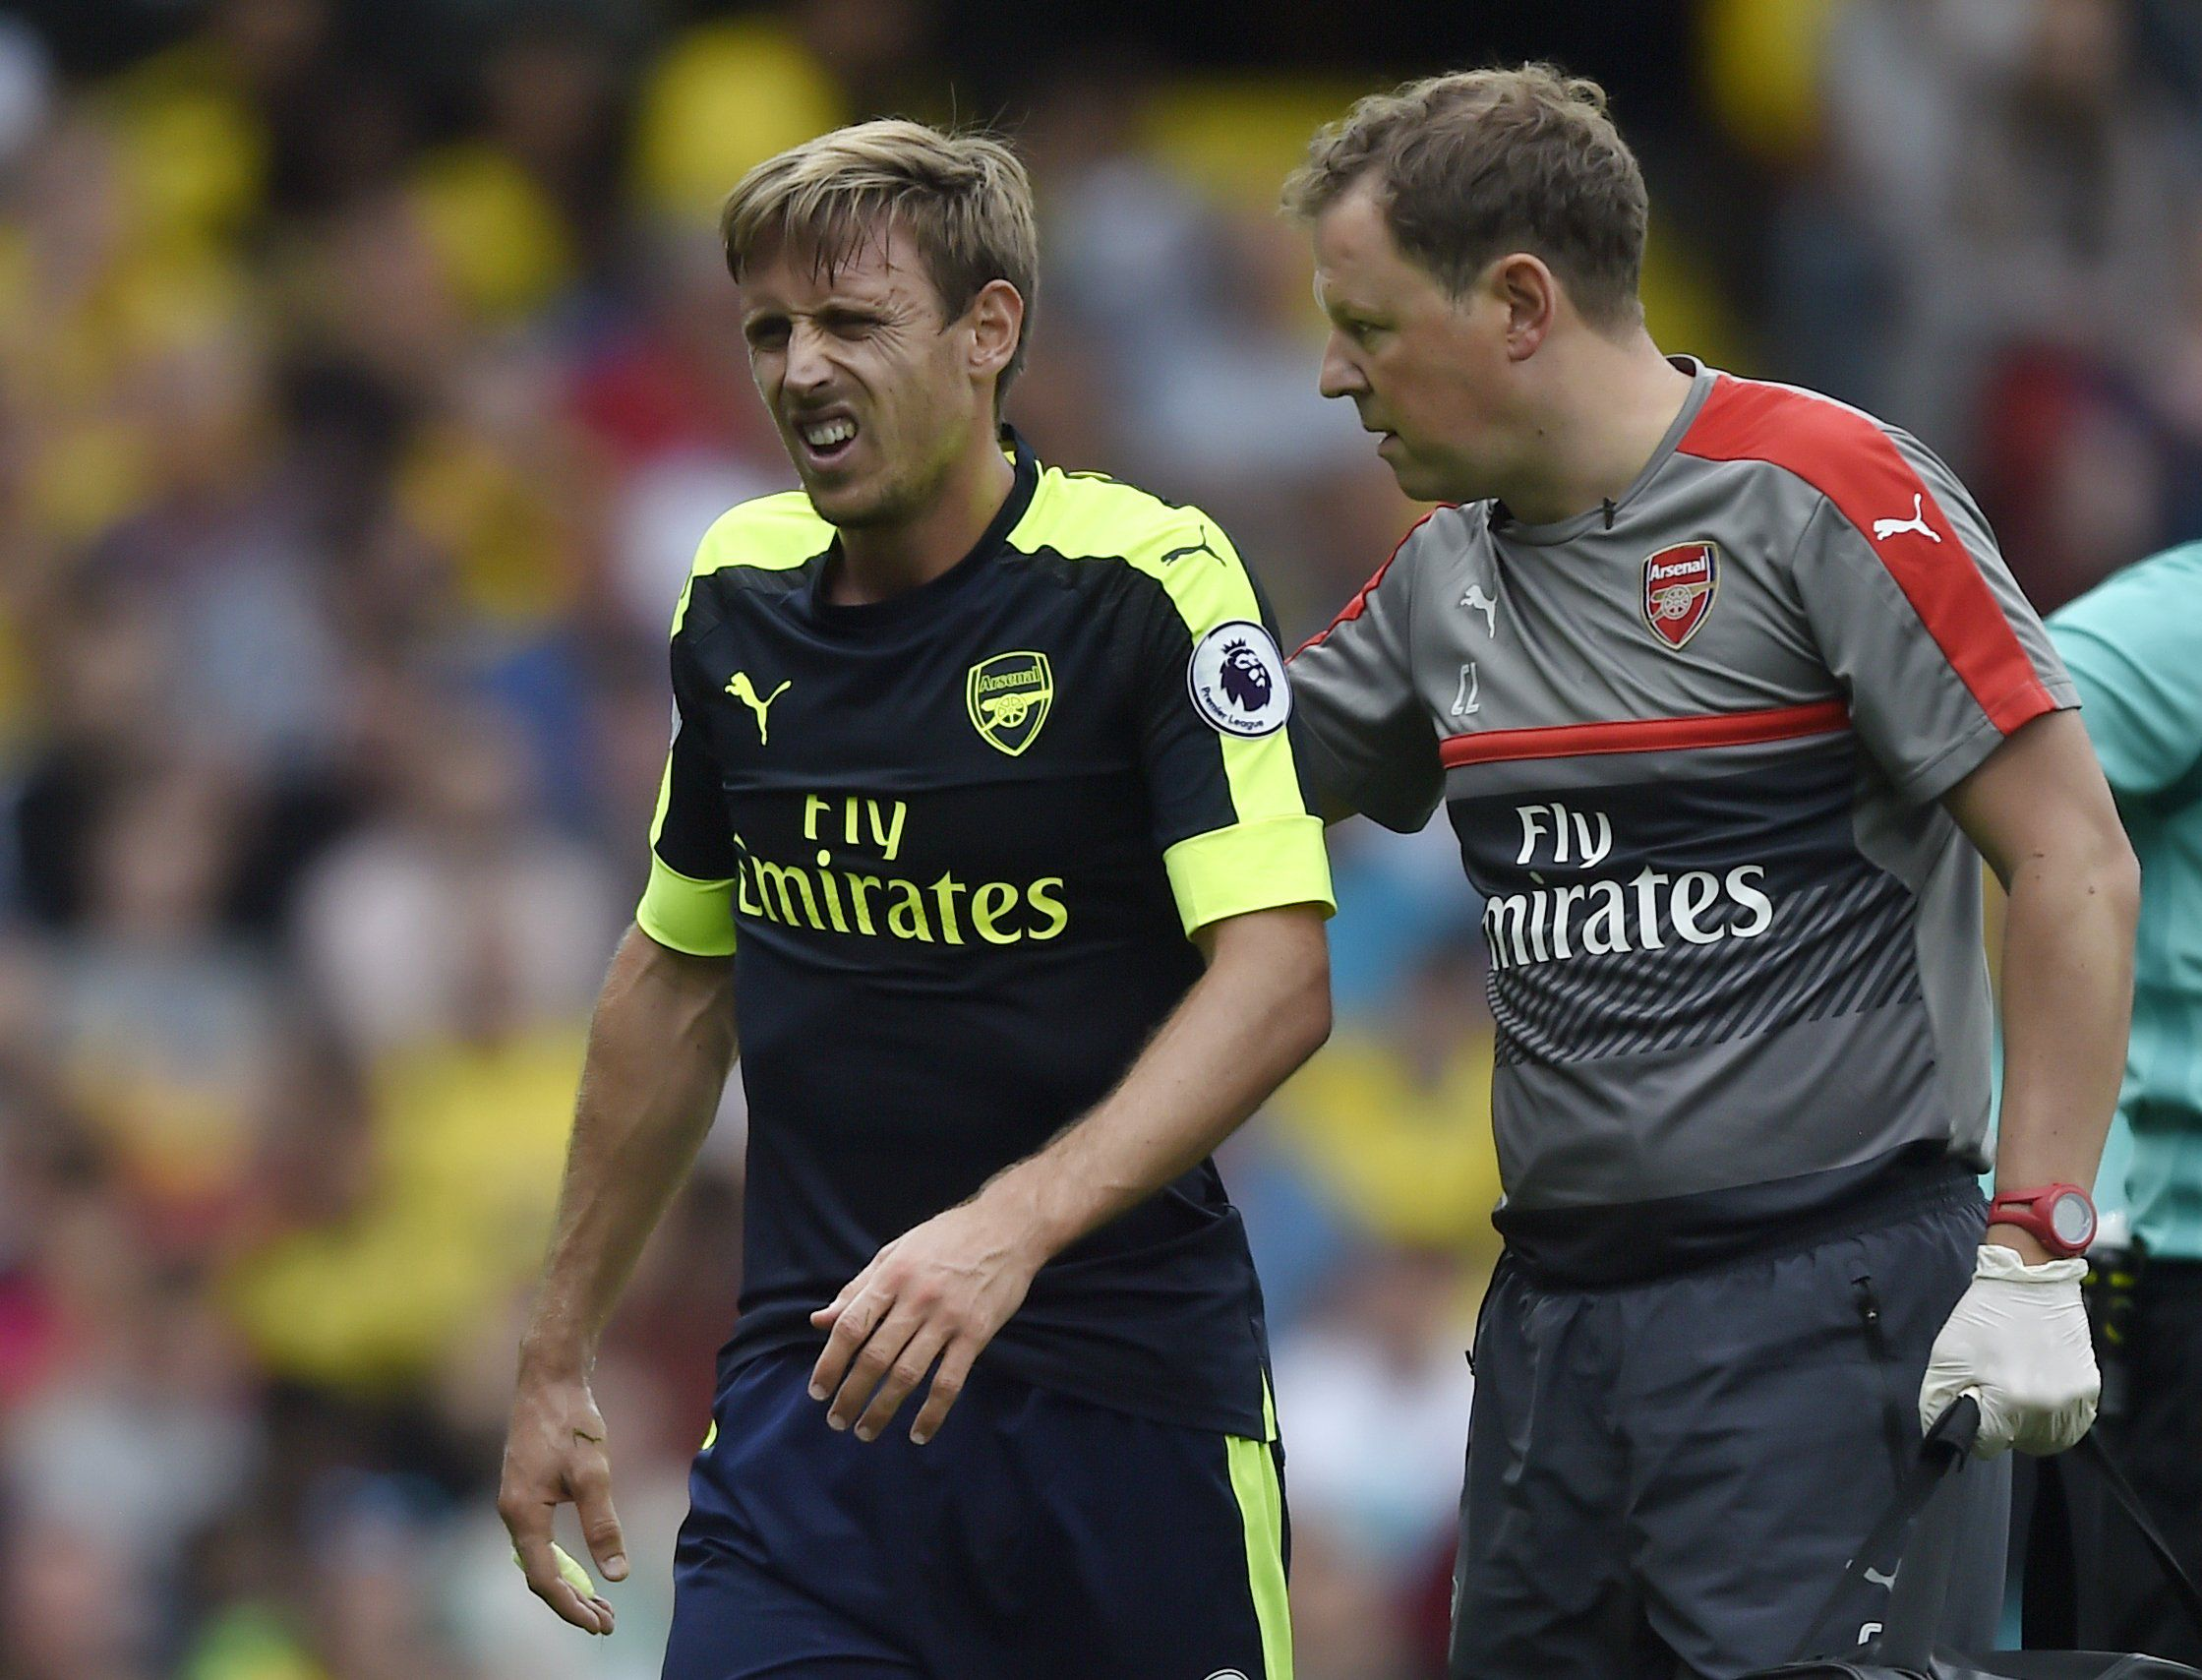 Arsenal boss Arsene Wenger confirms Nacho Monreal's injury is 'nothing major'